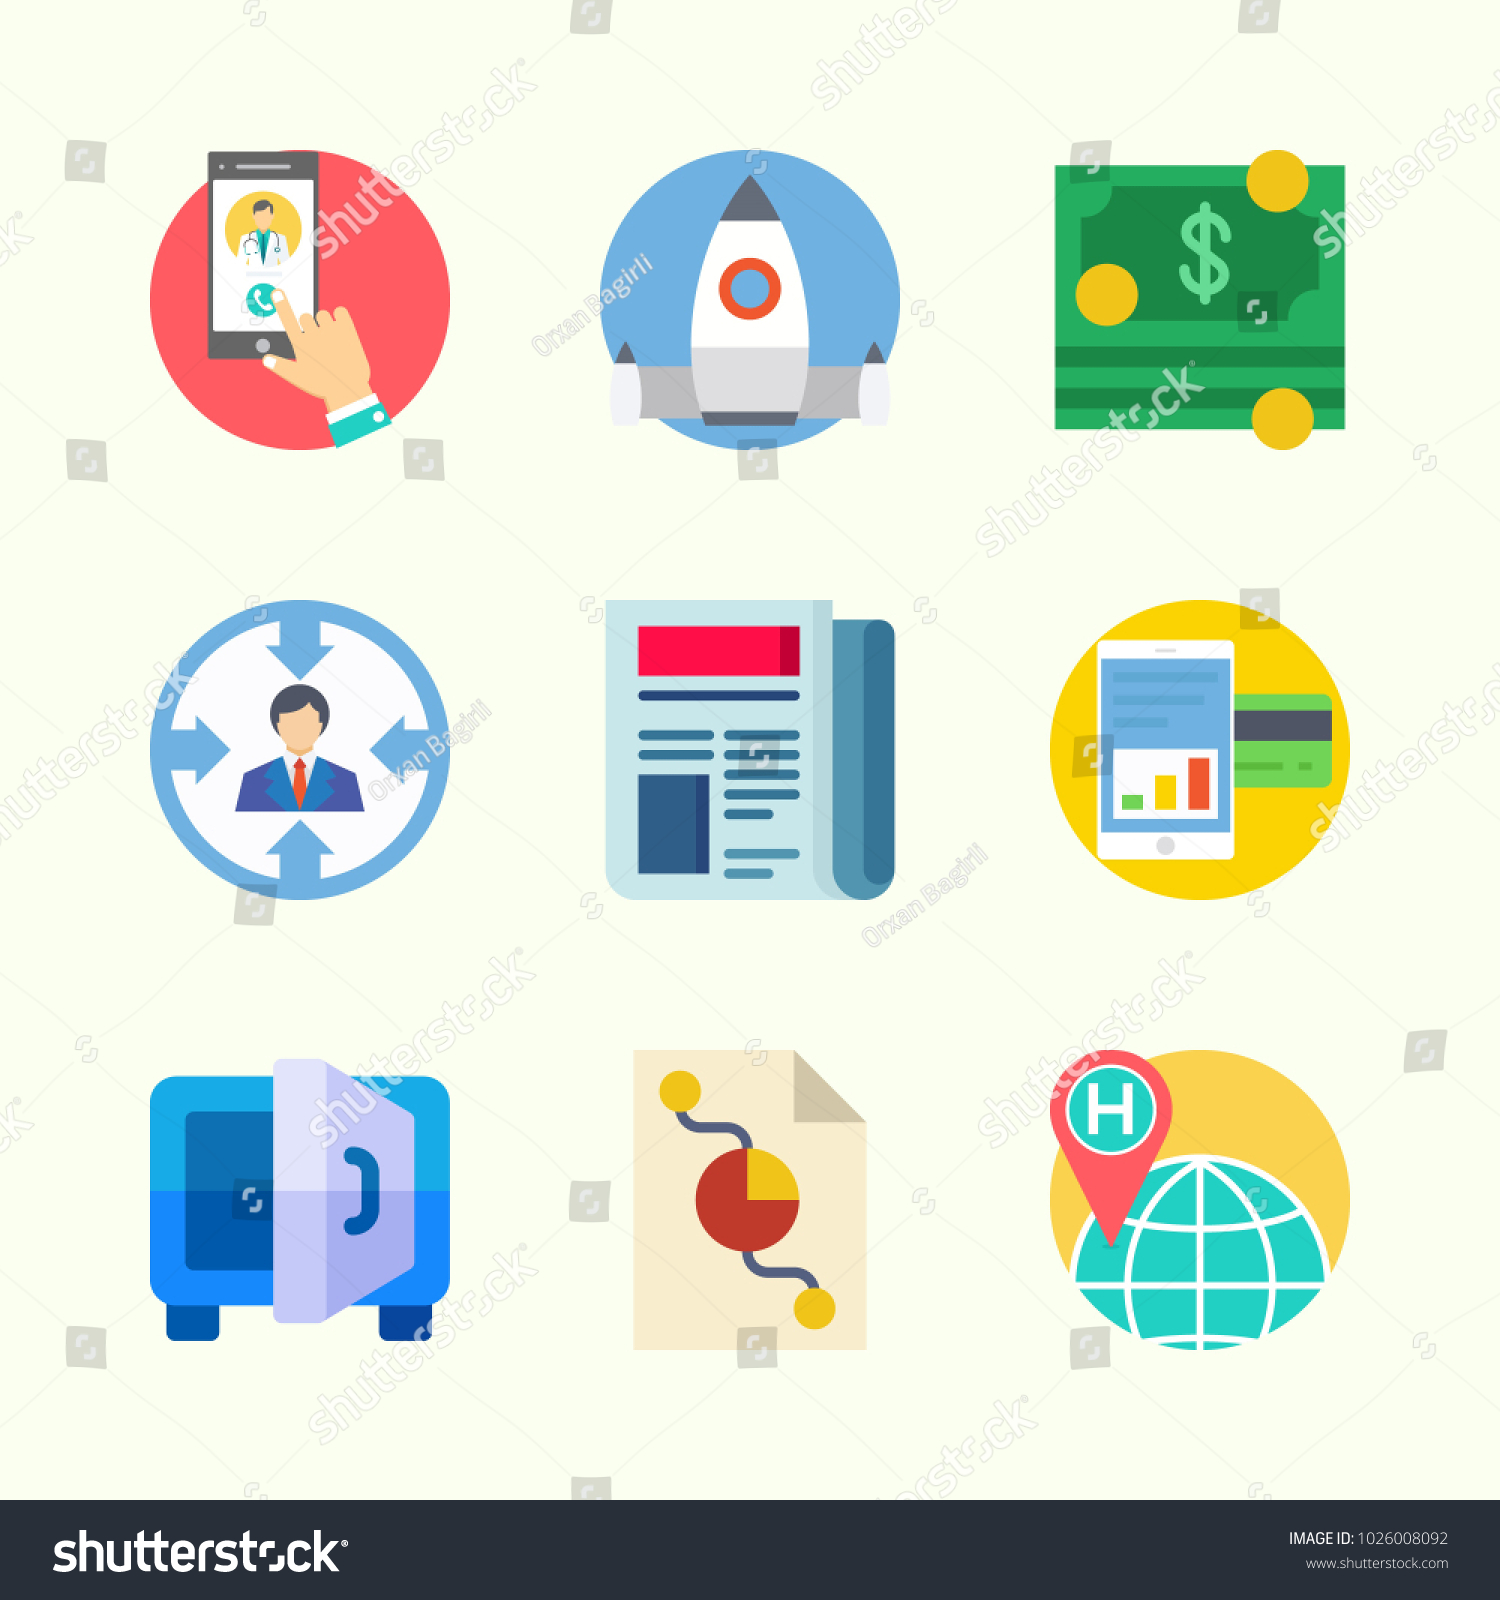 Icons about digital marketing pie chart stock vector 1026008092 icons about digital marketing with pie chart startup target smartphone newspaper and nvjuhfo Image collections